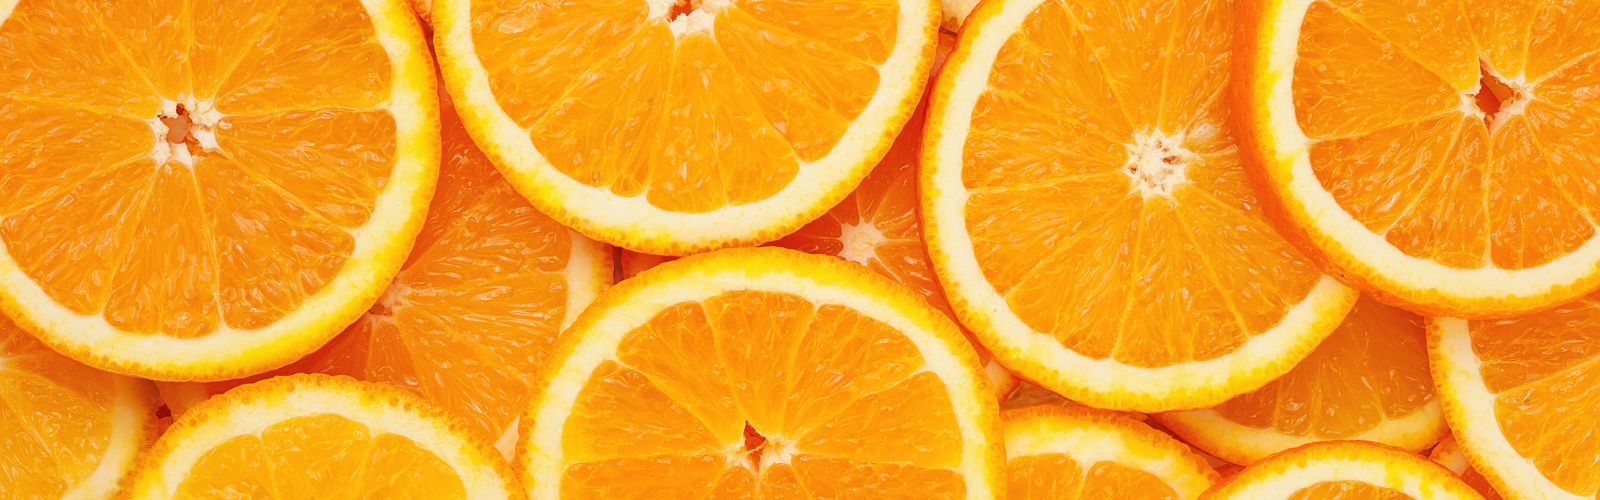 Oranges - Fruits to Increase Sperm Count and Motility